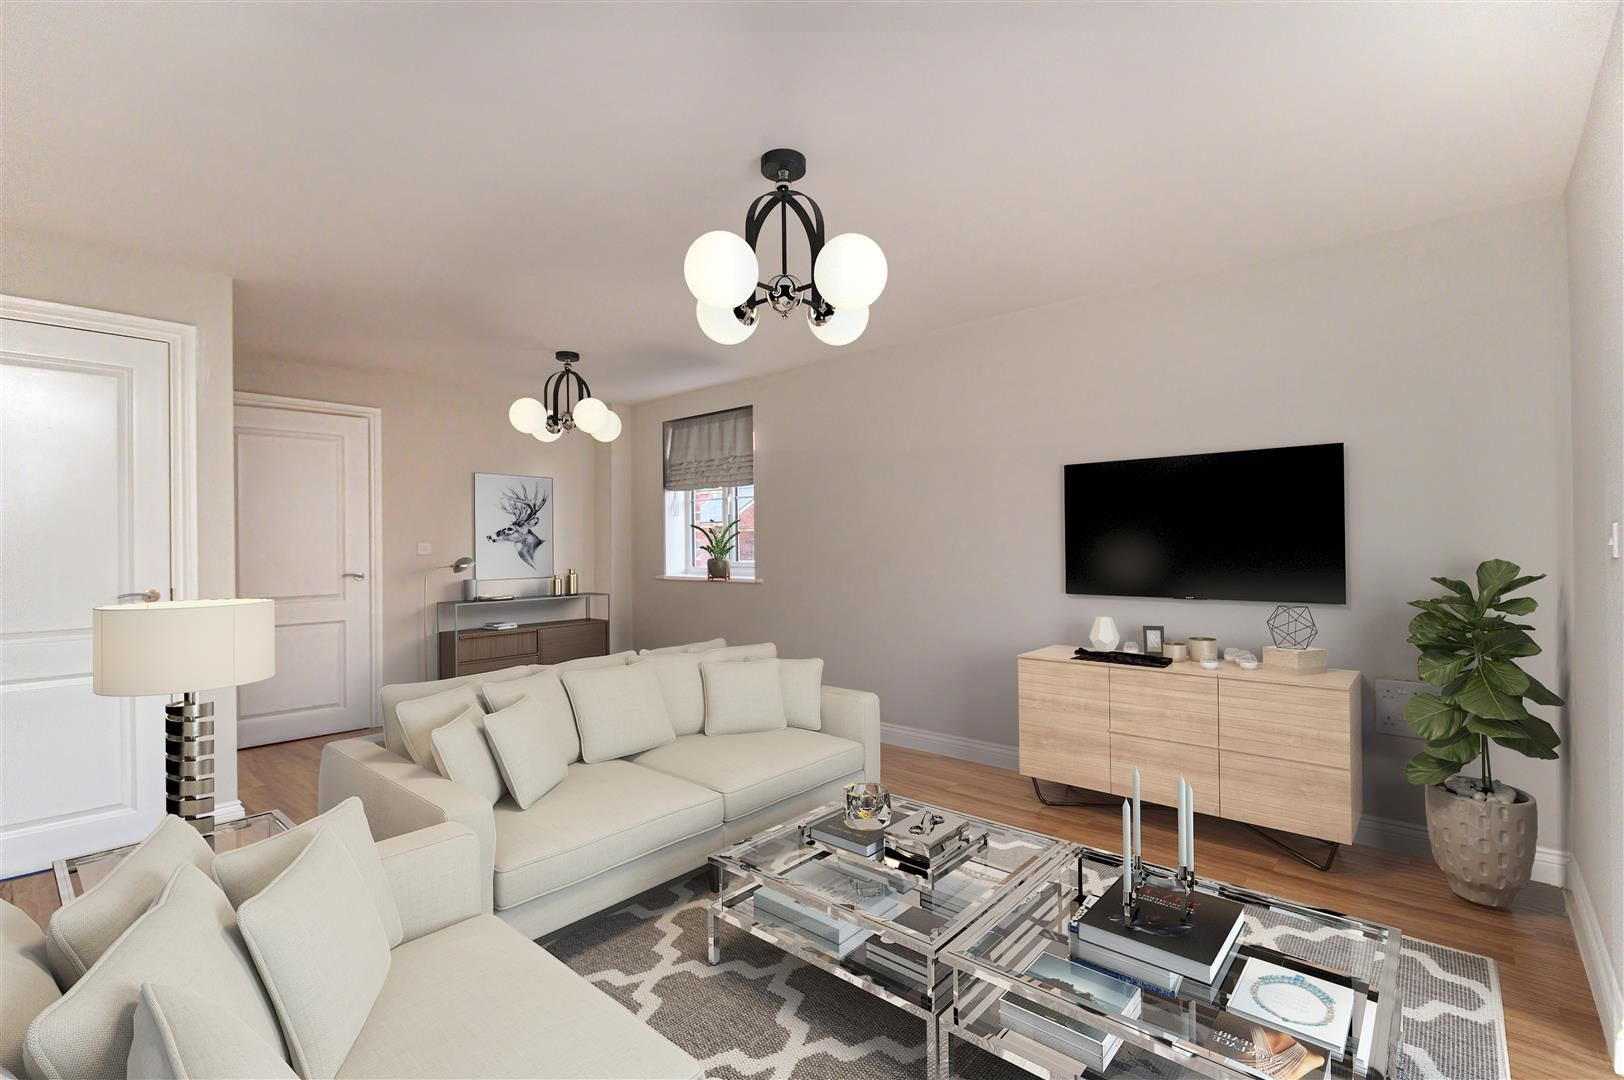 2 bed semi-detached for sale in Kingstone  - Property Image 3